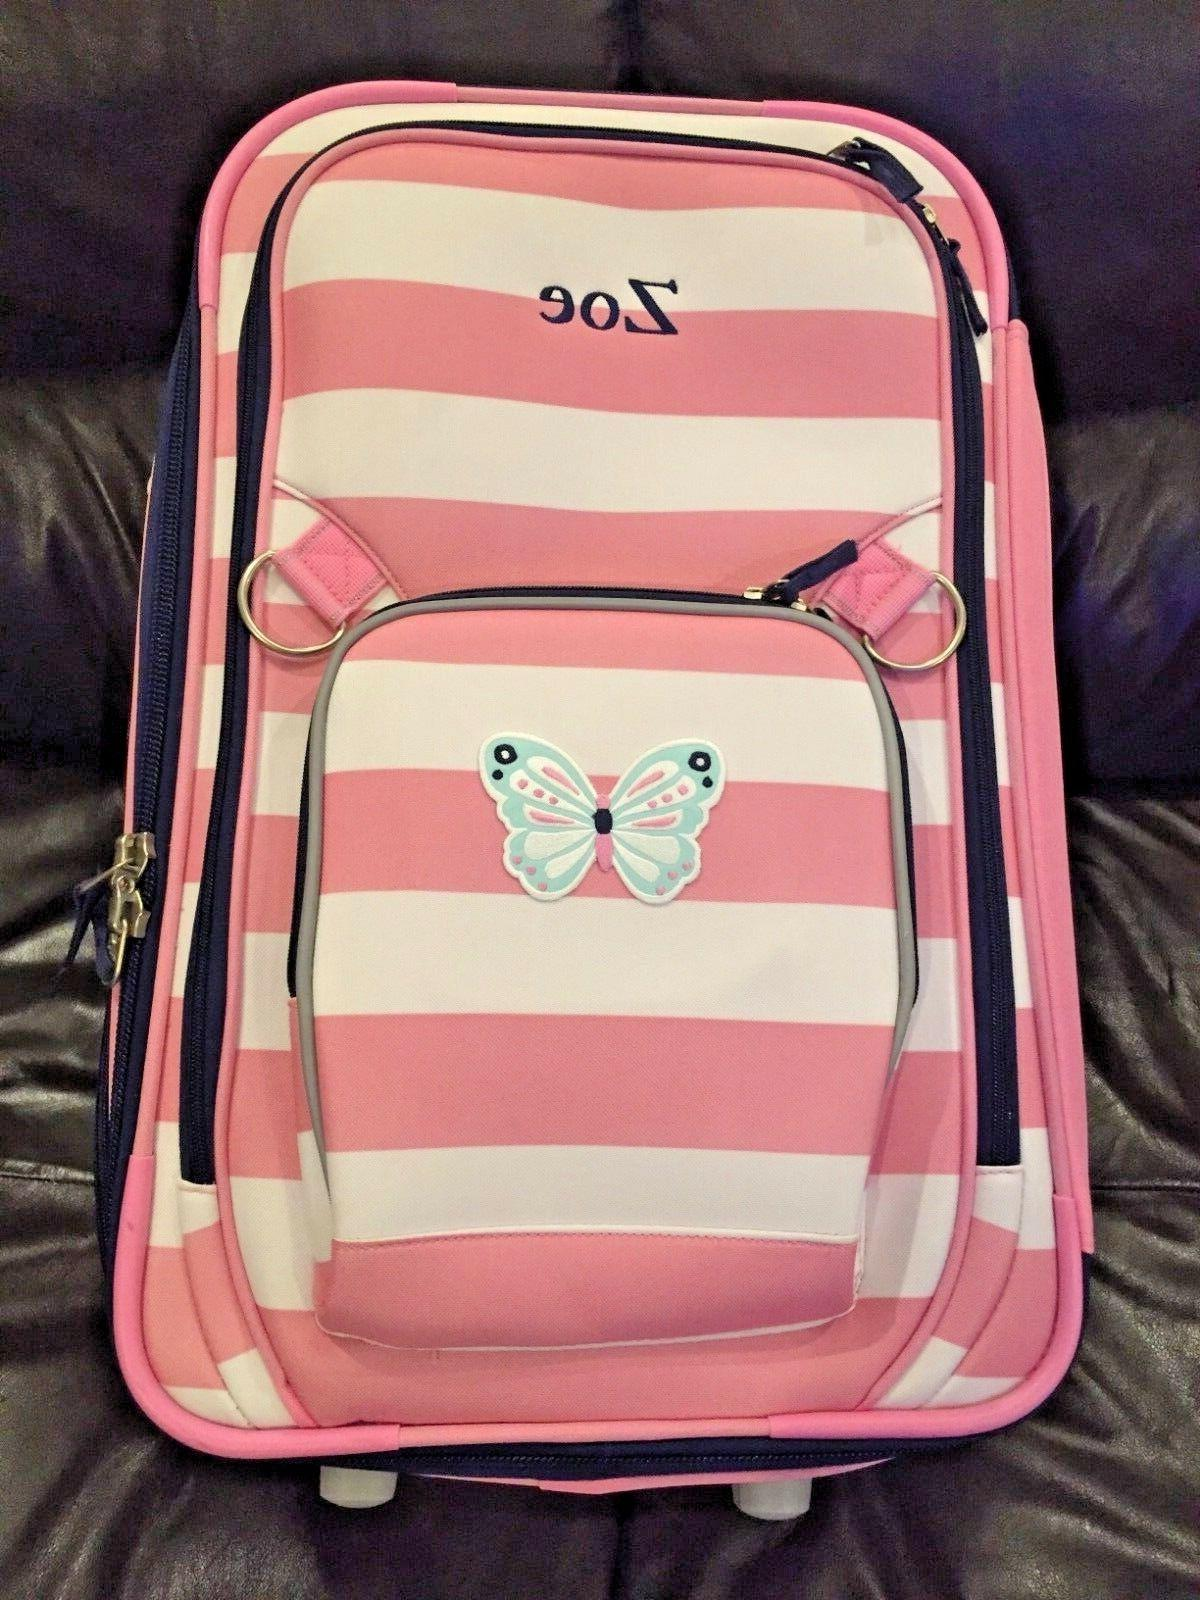 fairfax large pink striped butterfly suitcase luggage